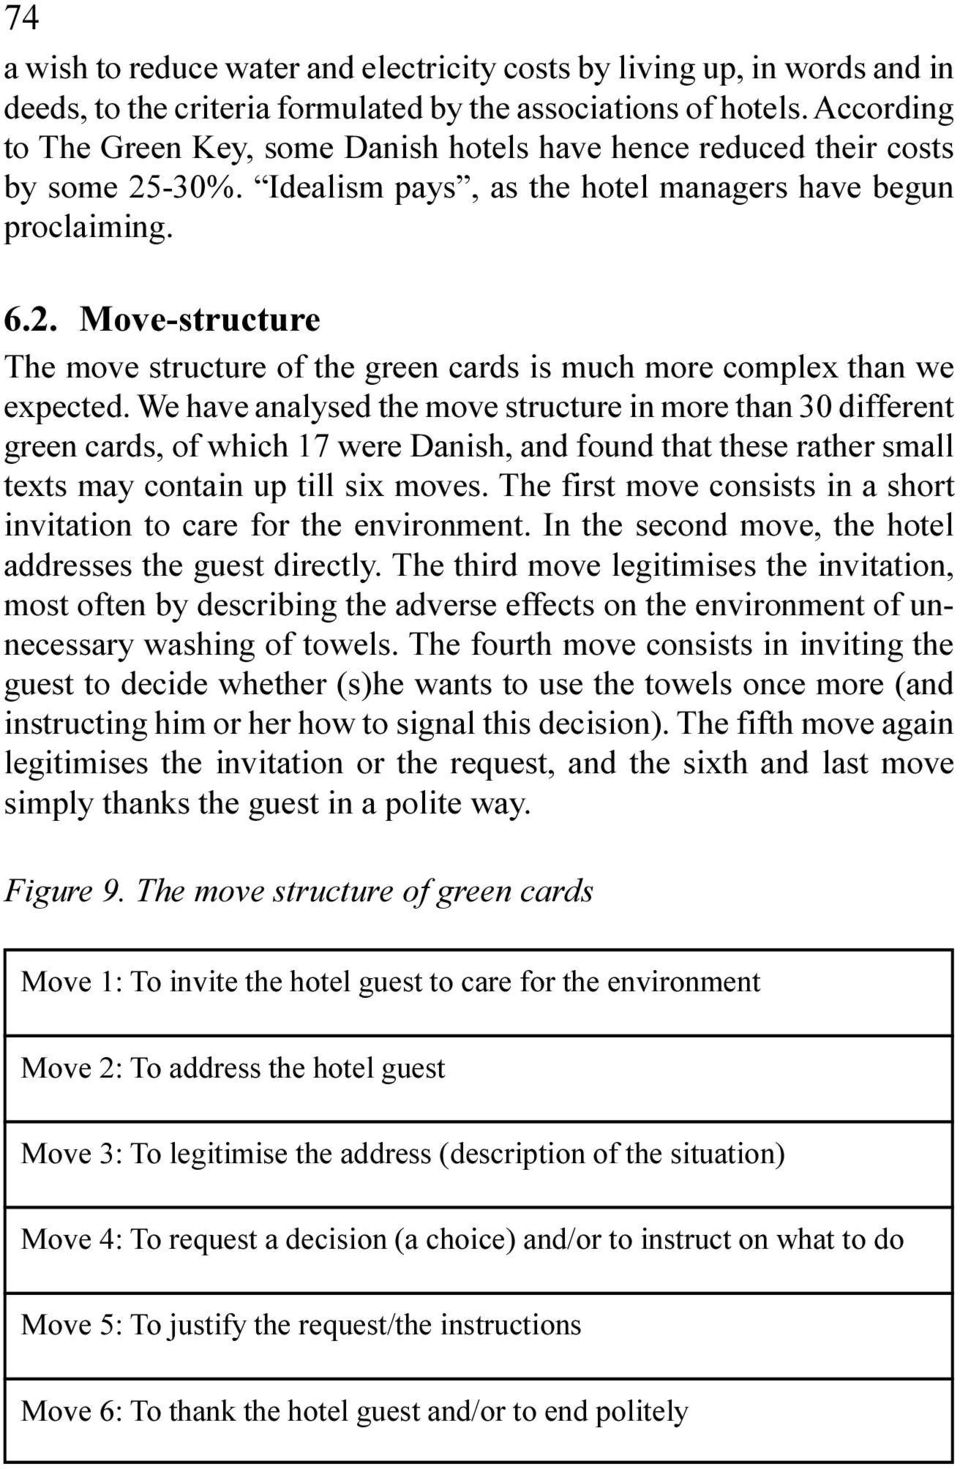 analysed the move structure in more than 30 different green cards, of which 17 were Danish, and found that these rather small texts may contain up till six moves The first move consists in a short